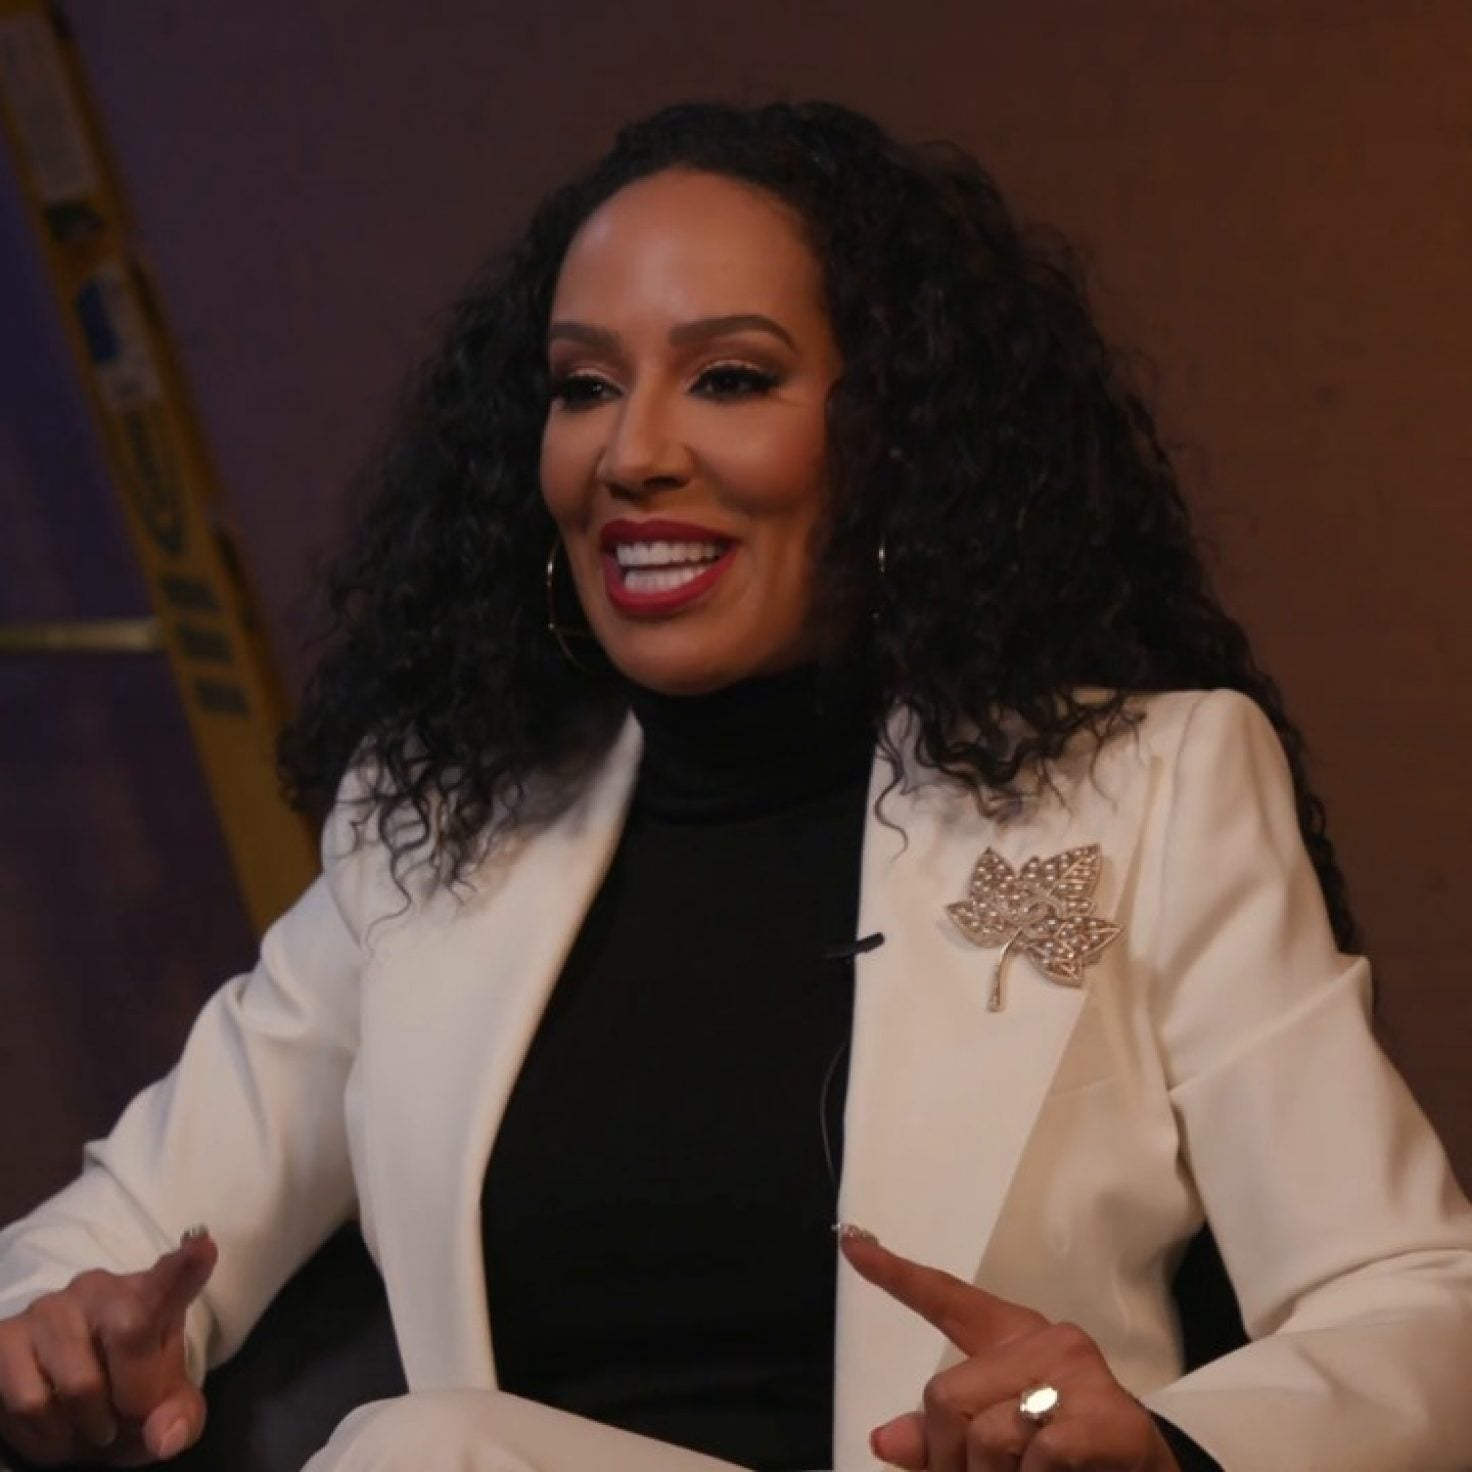 'RHOA' Star Tanya Sam Says She's Become 'More Assertive' After 2 Seasons Of Dealing With Her Co-Stars